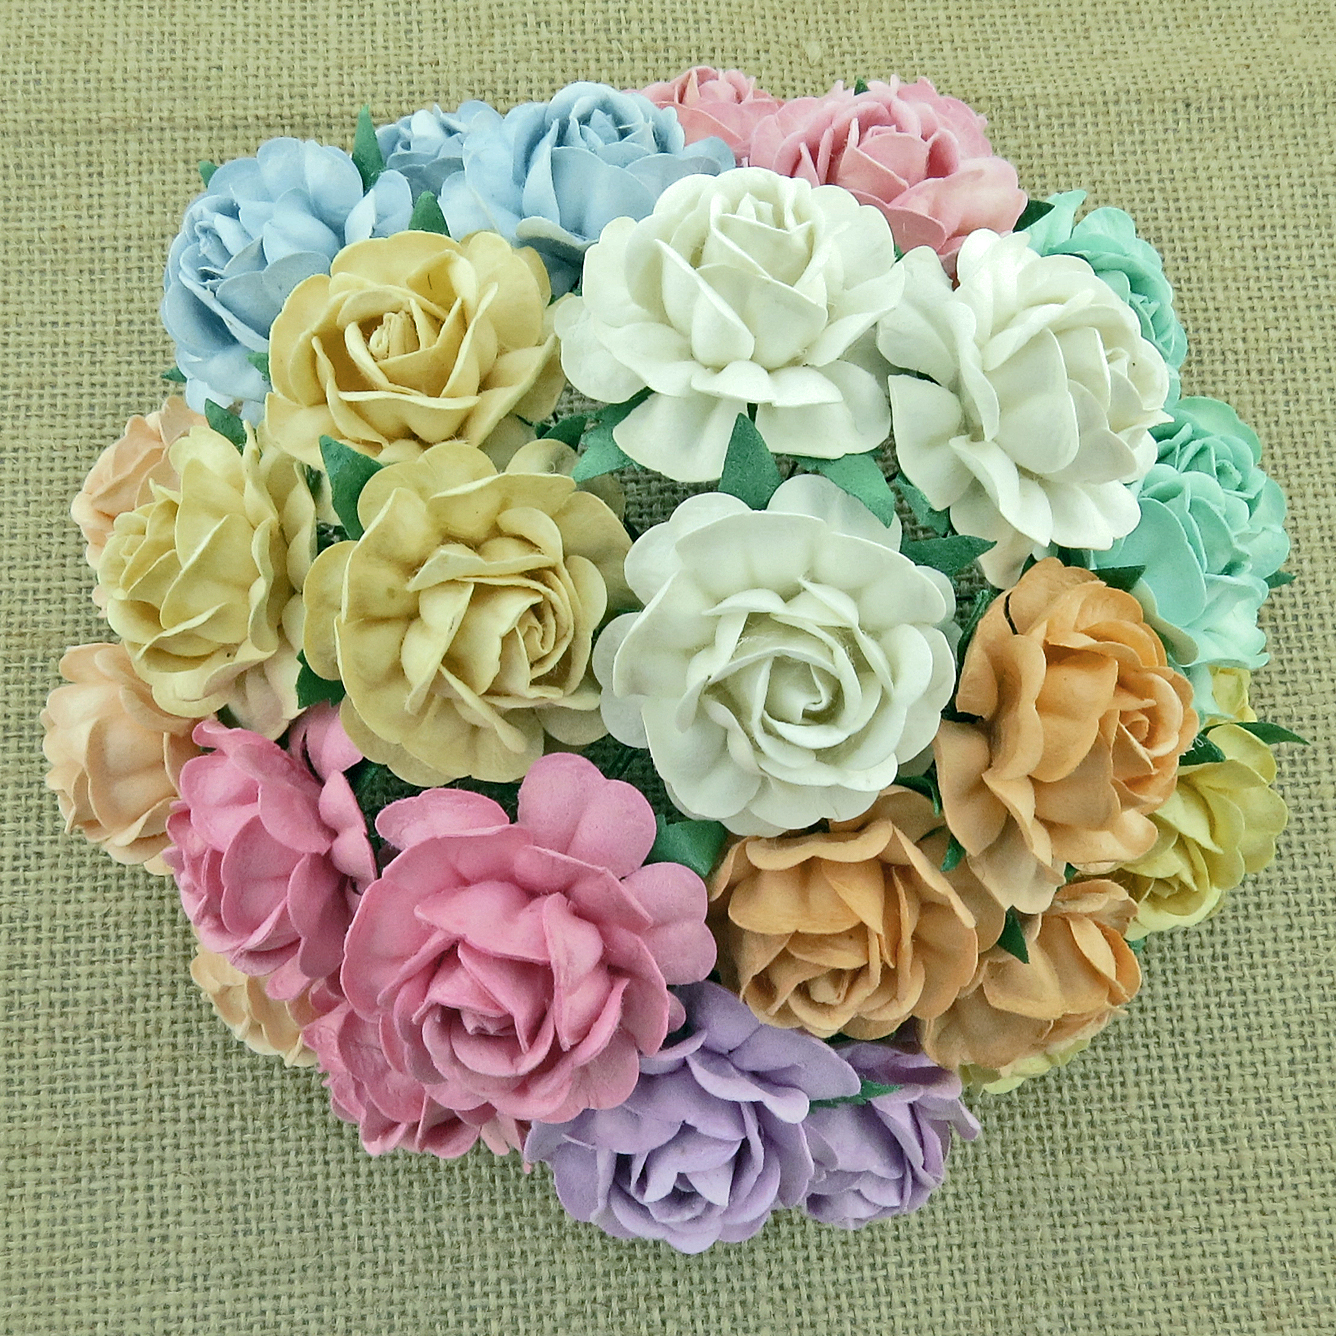 50 MIXED PASTEL MULBERRY PAPER TEA ROSES 40mm